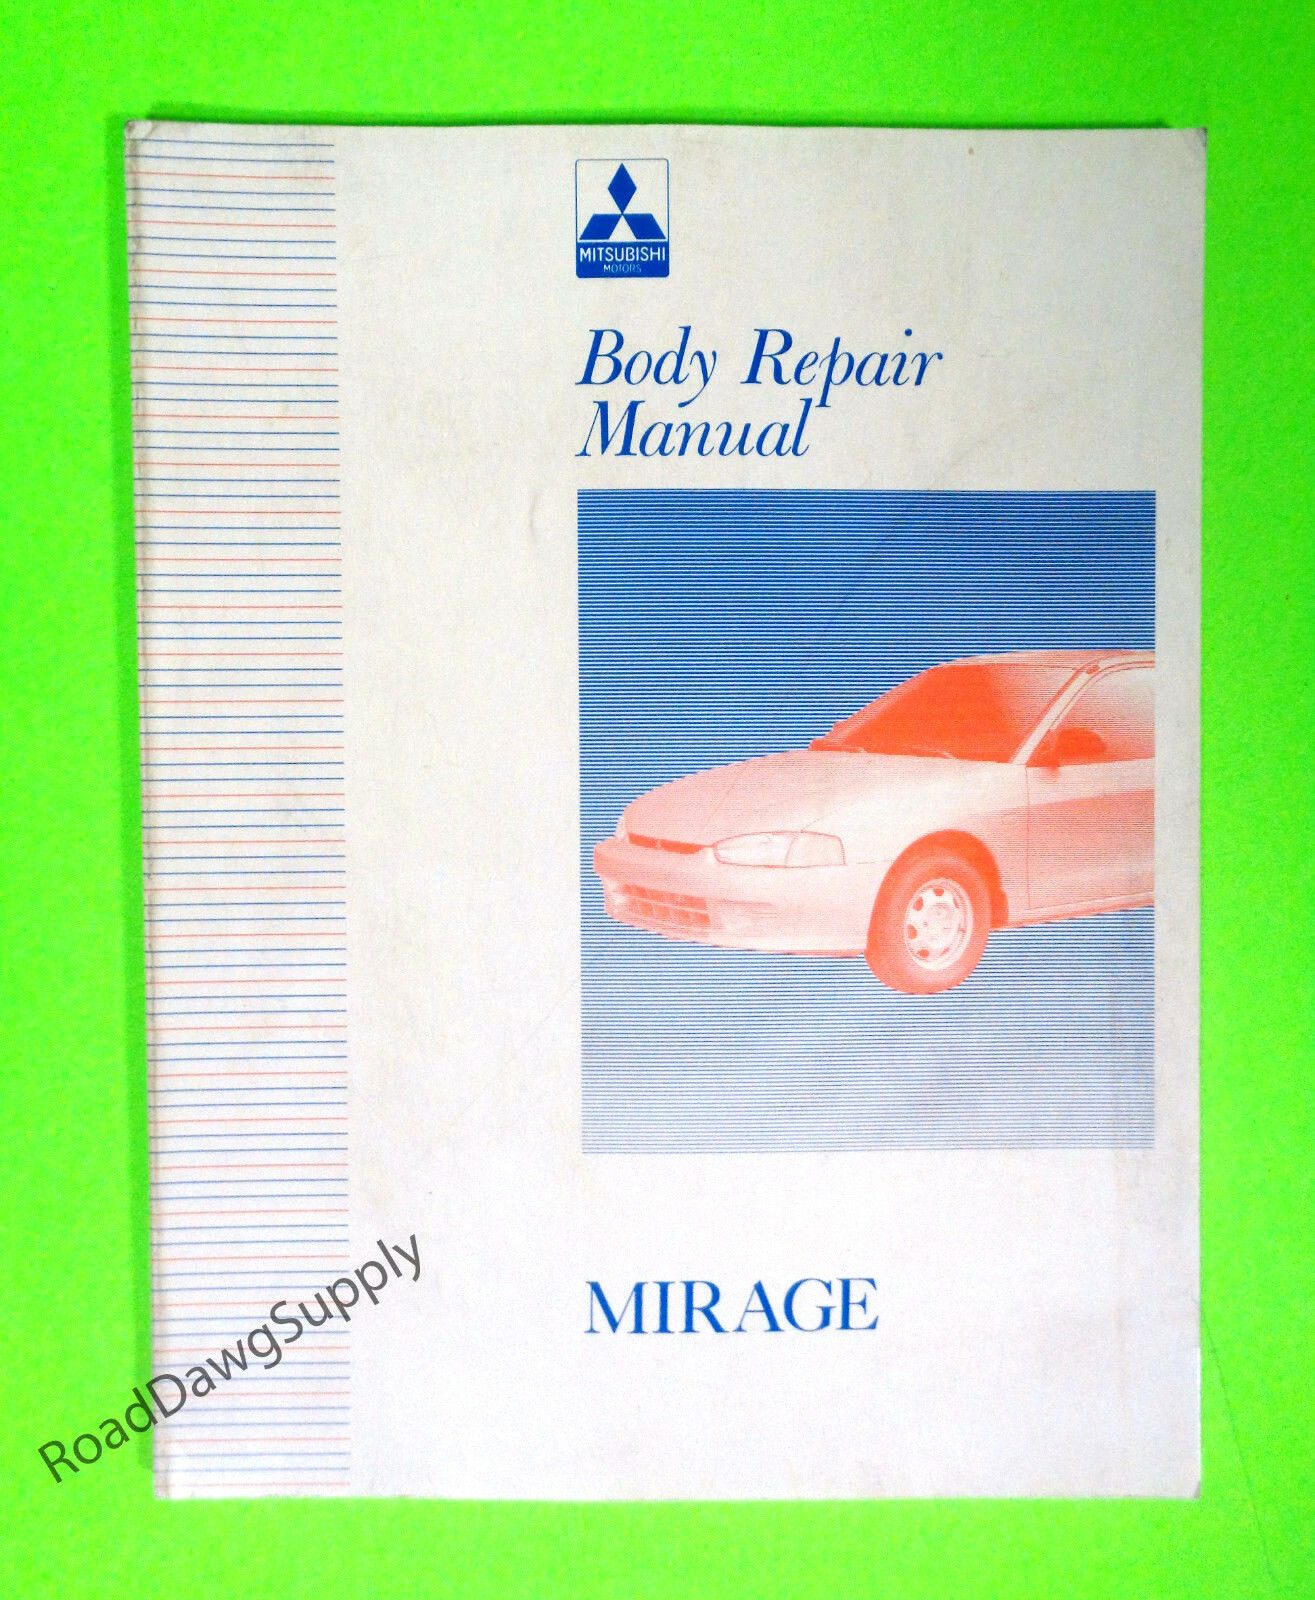 1997 Mitsubishi Mirage Body Repair Service Manual Book 1 of 1Only 1  available ...